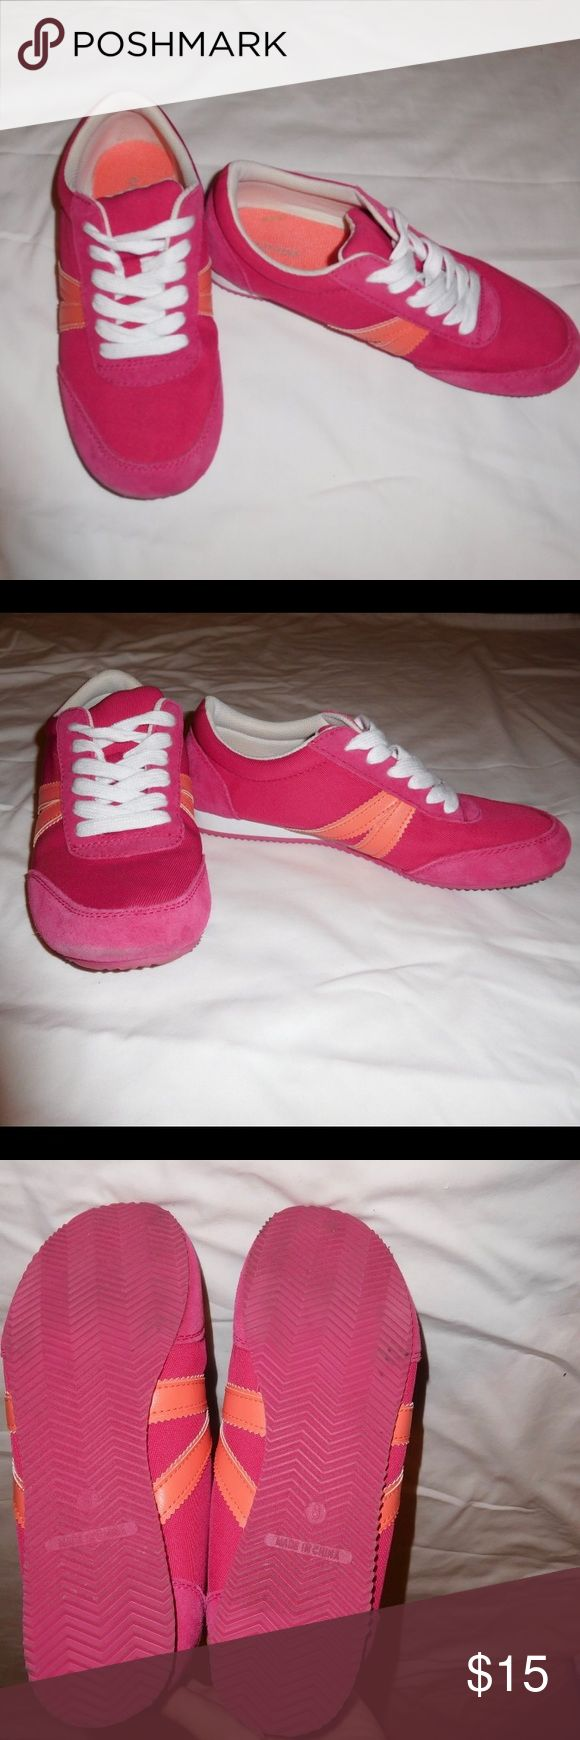 Pink and Orange Sneakers Barely worn lightweight fashion sneakers. Not recommended for athletic wear. Old Navy Shoes Sneakers